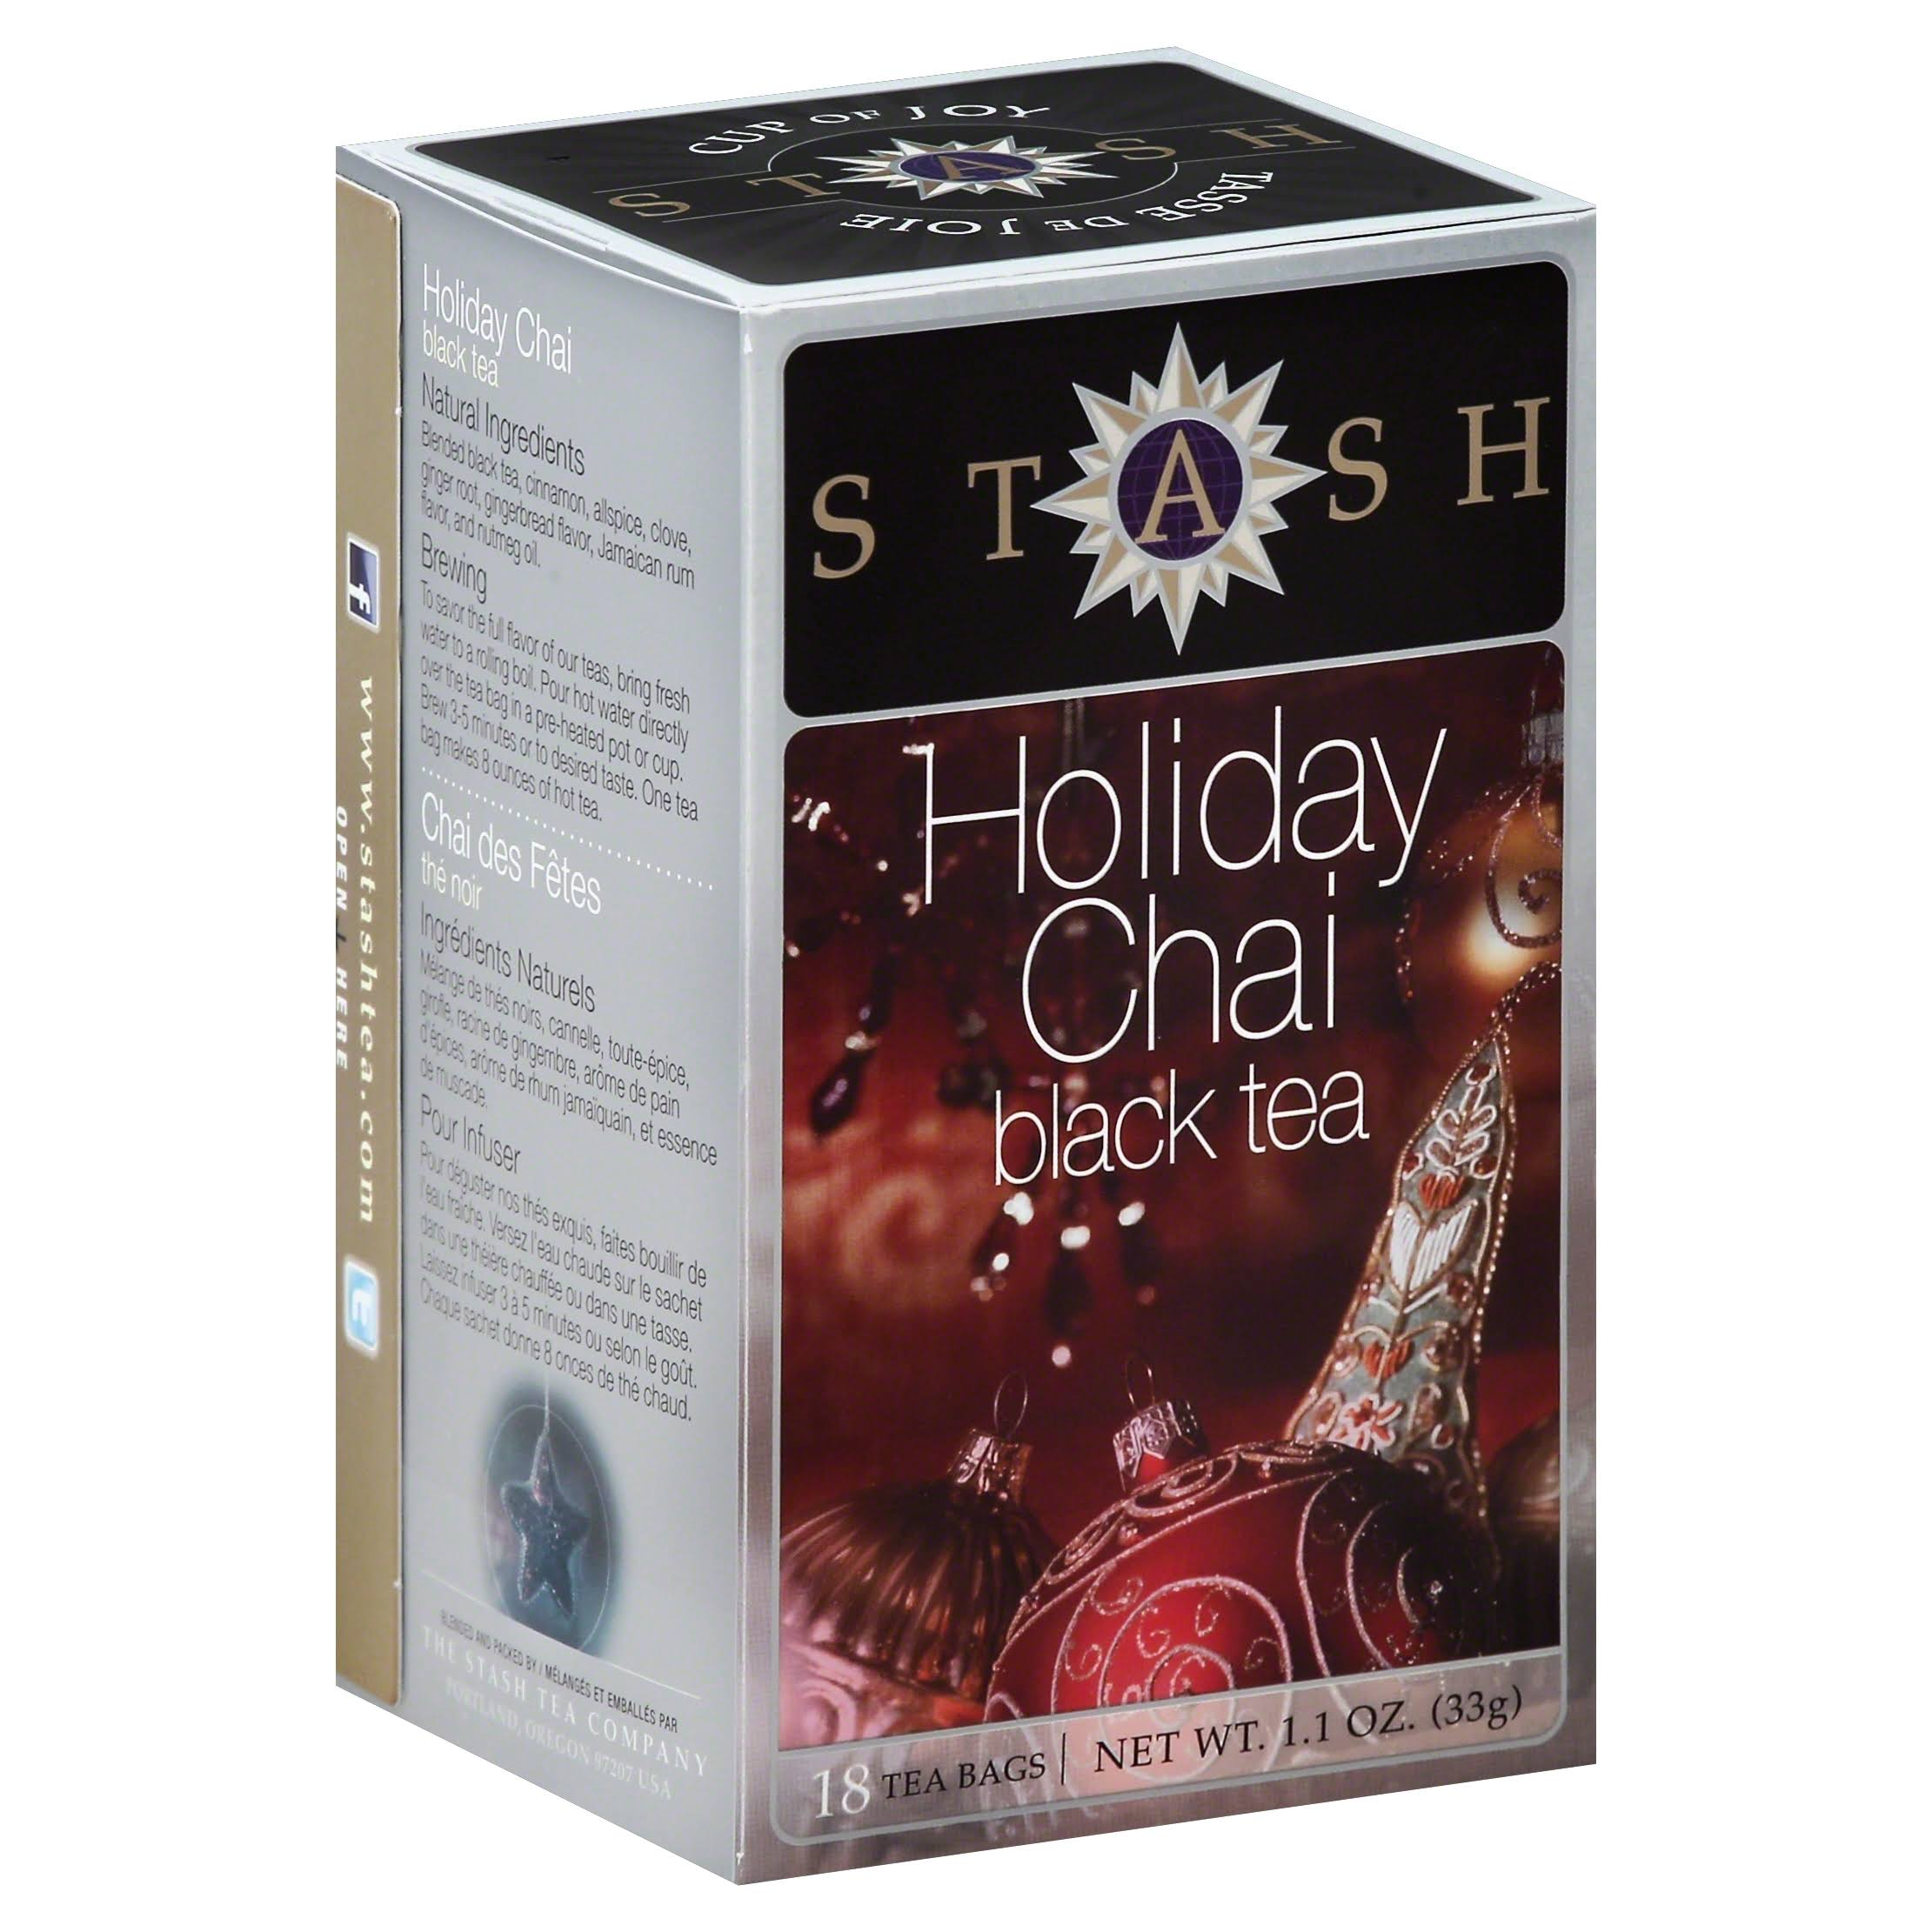 Stash Tea Holiday Chai Black Tea - 18ct